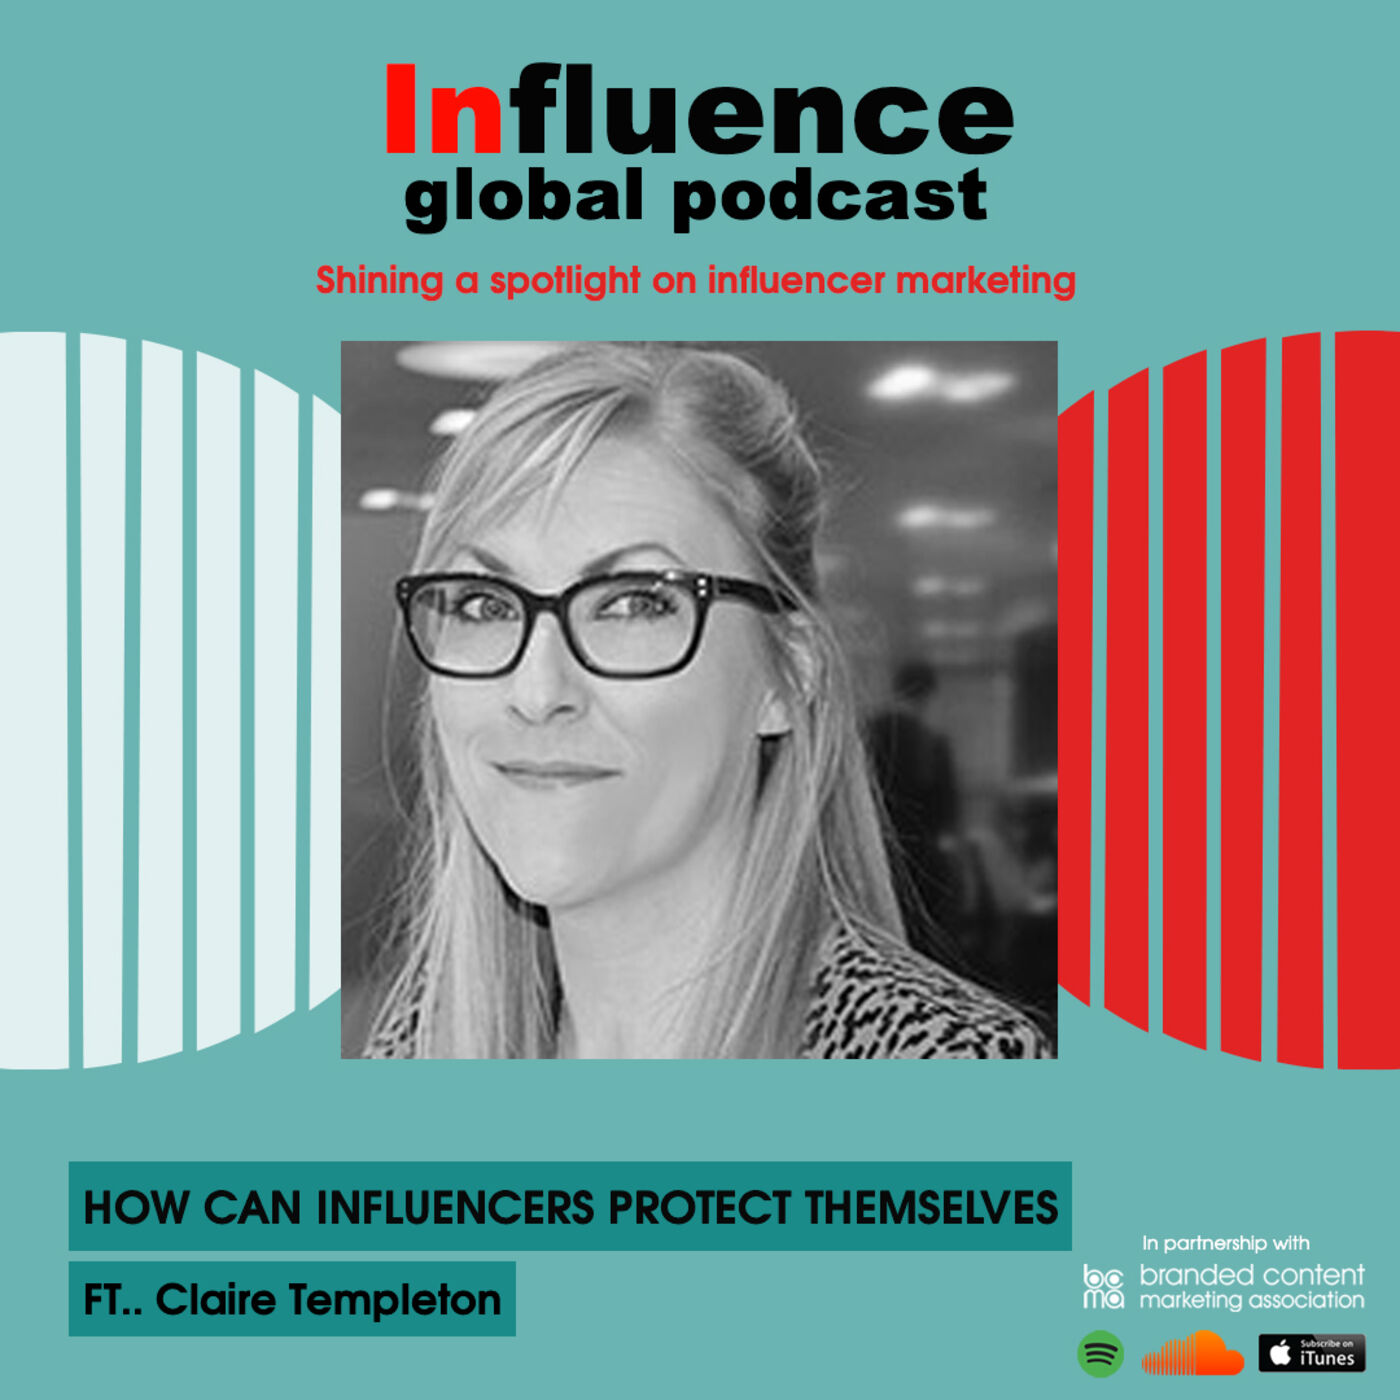 S2-E7: How Influencers Can Protect Themselves